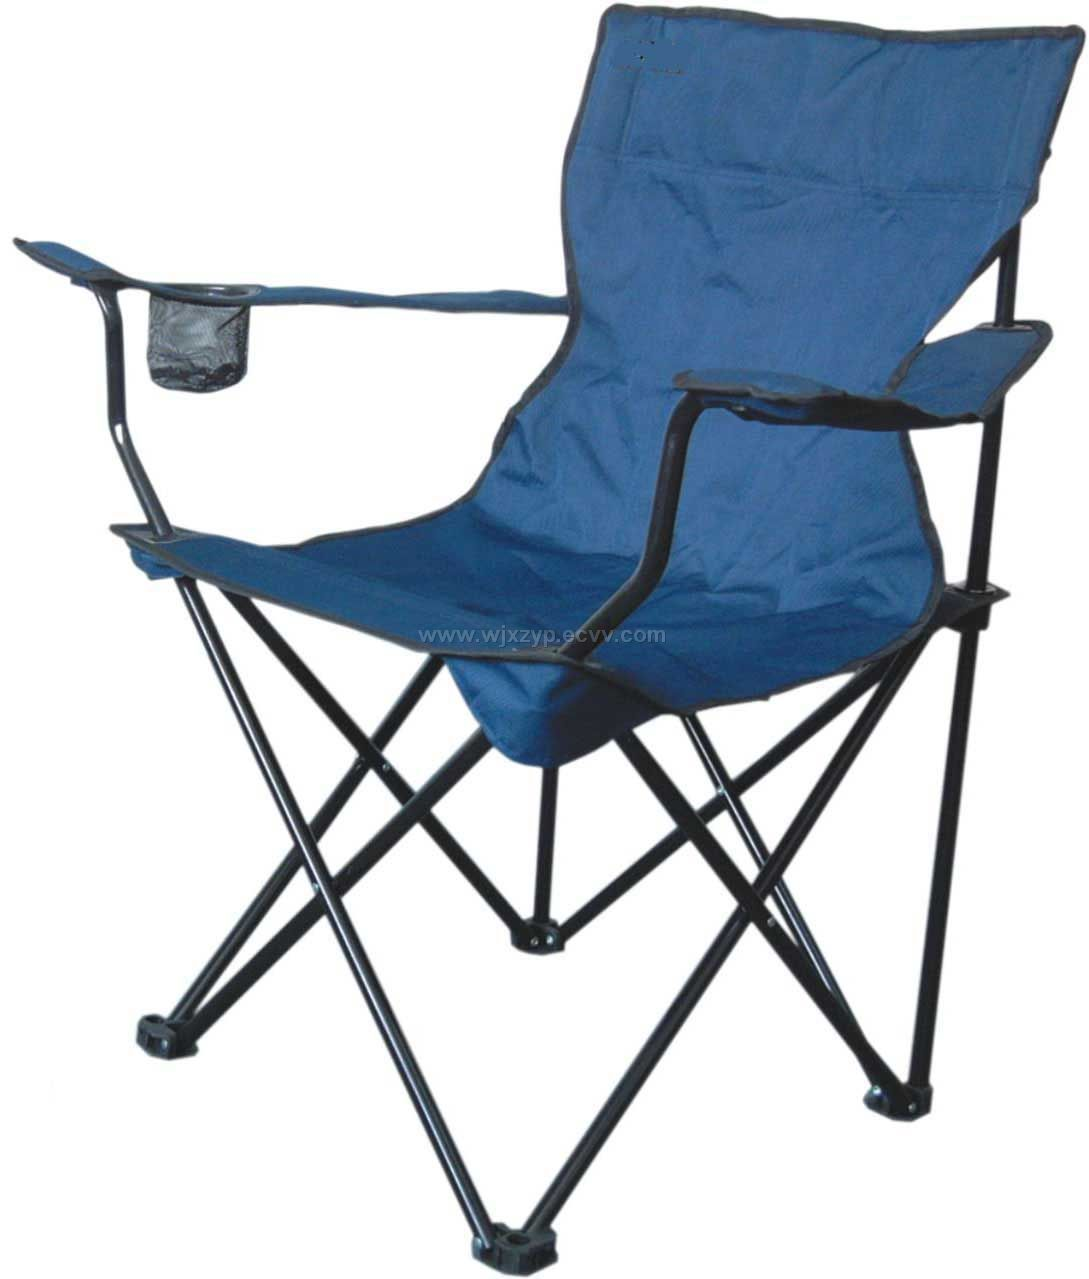 folding chair purchasing souring agent